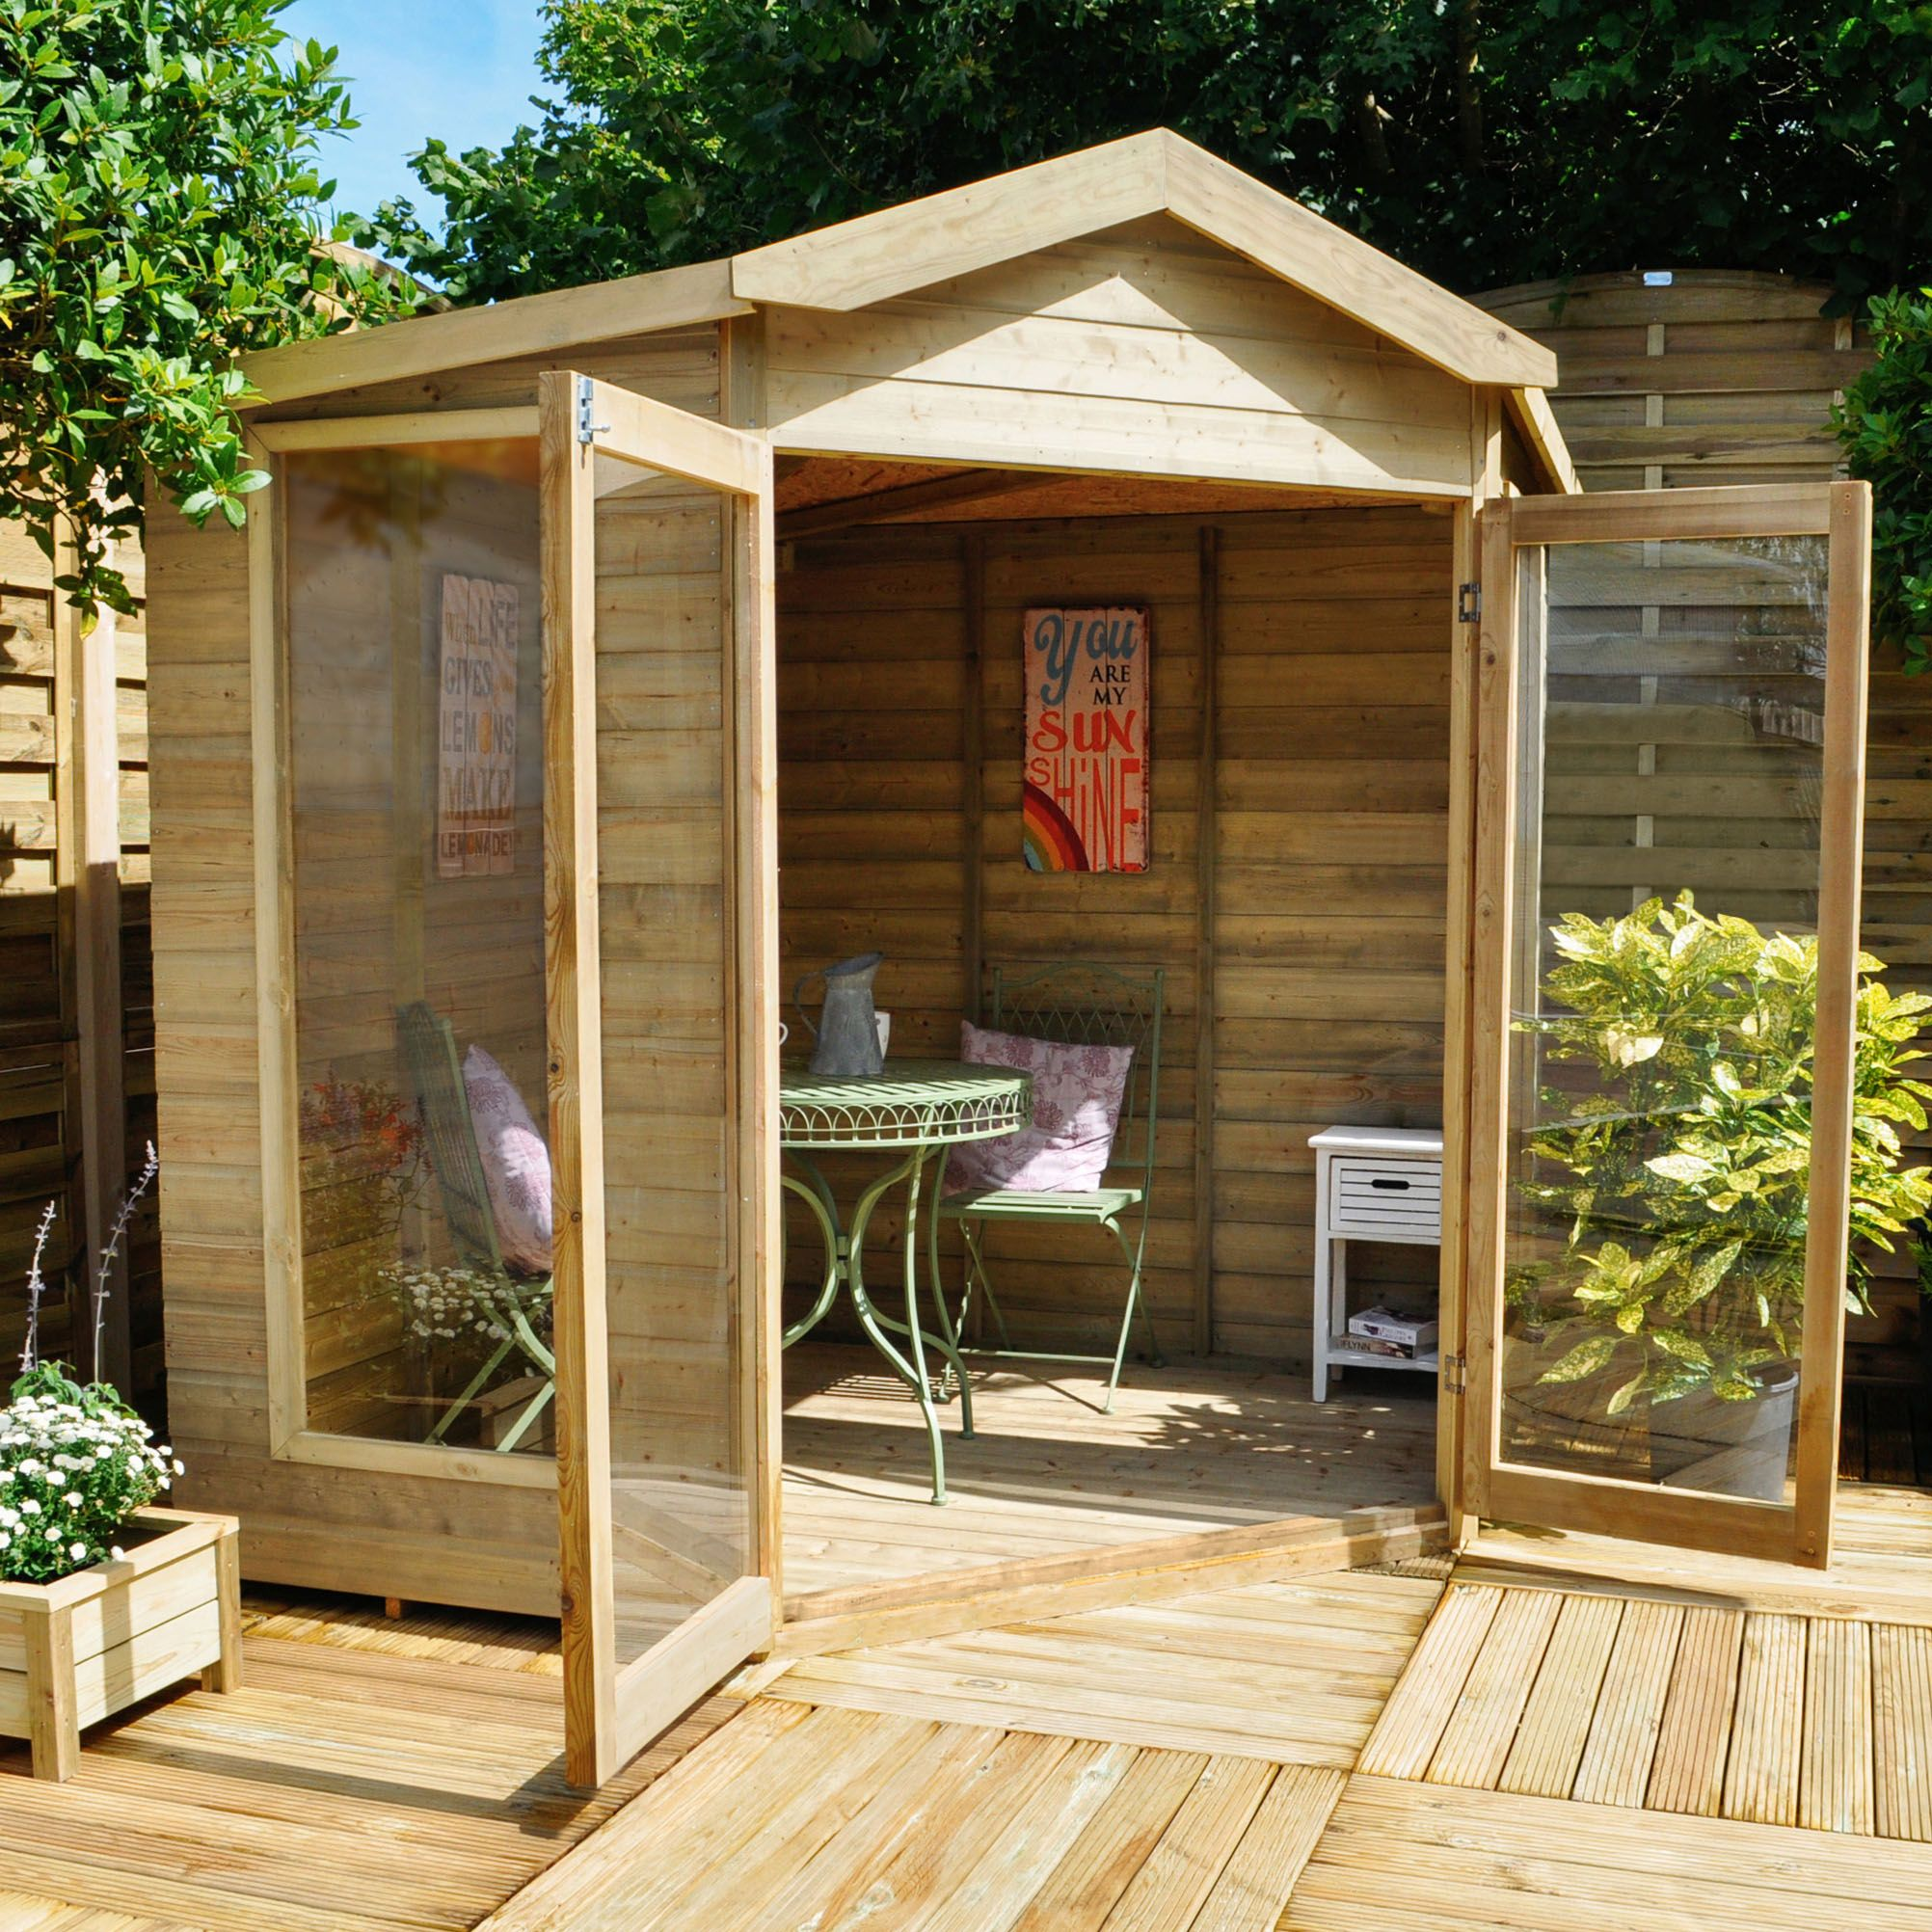 buy 7 x 7 rock blockley corner garden wooden summerhouse x x from our summer houses range at tesco direct we stock a great range of products at everyday - Corner Garden Sheds 7x7